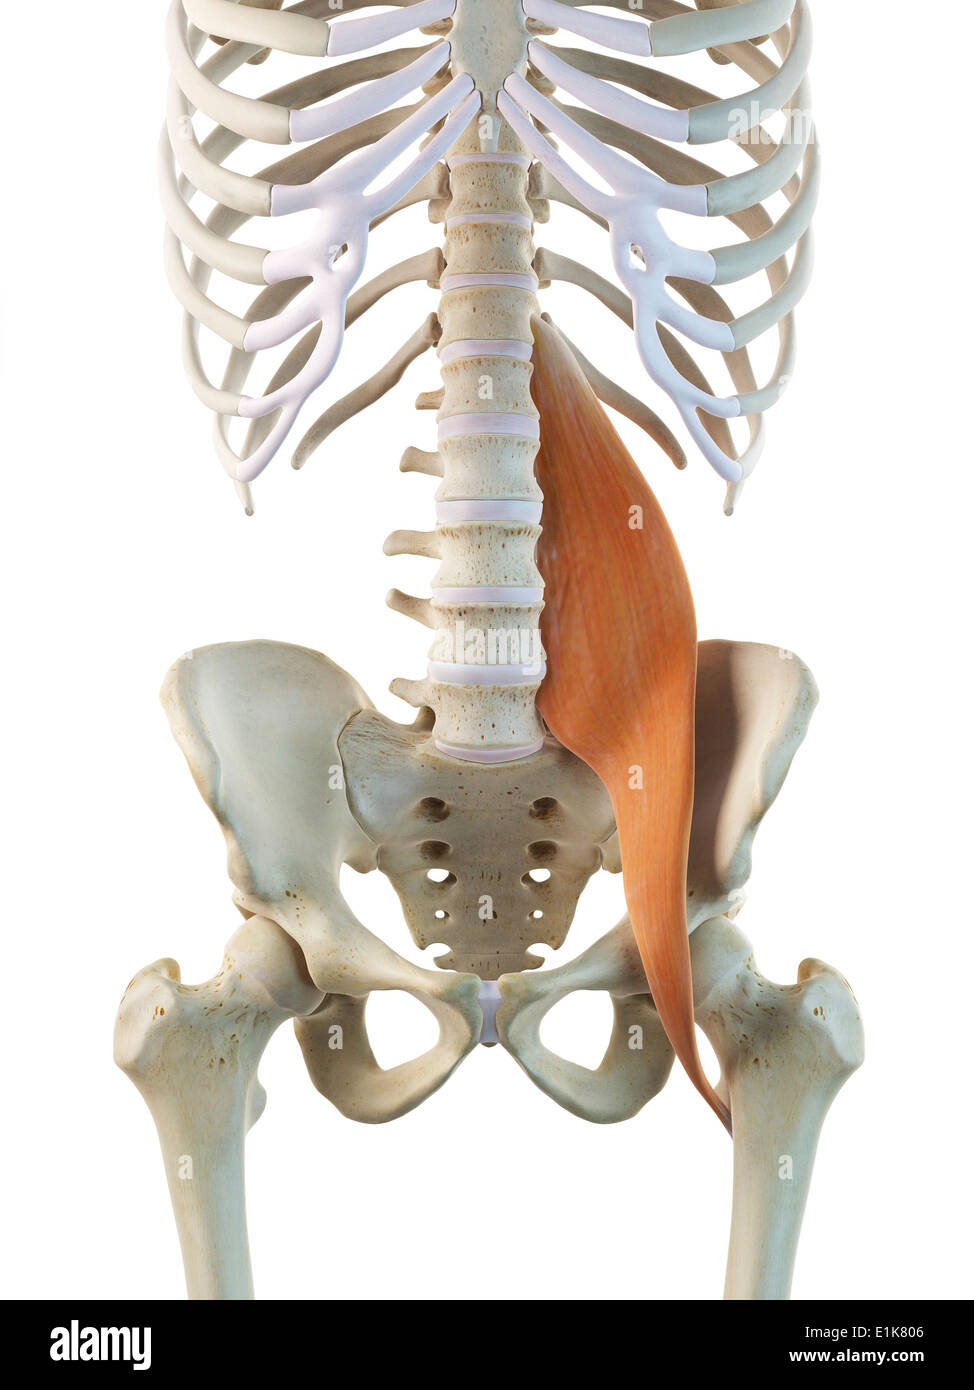 Psoas Major Muscle Stock Photos Psoas Major Muscle Stock Images